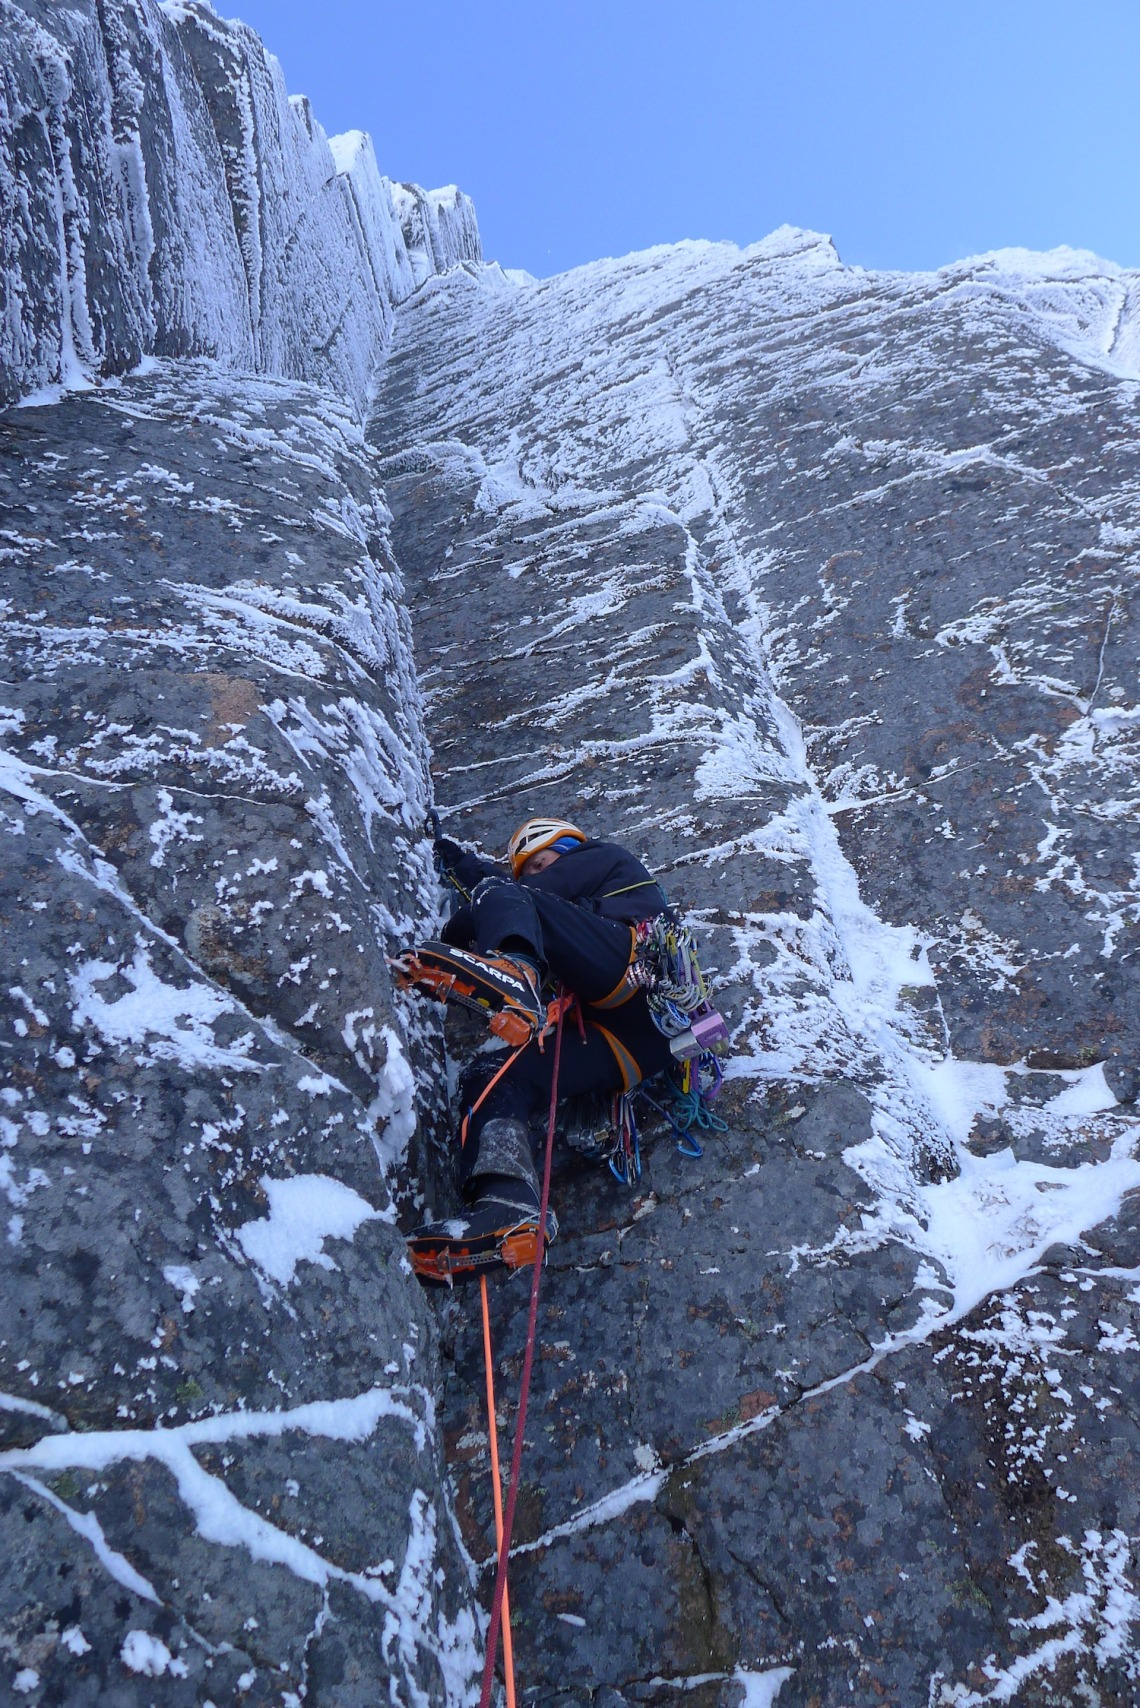 Ross Hewitt Guiding scottish winter climbing 5 ventricle